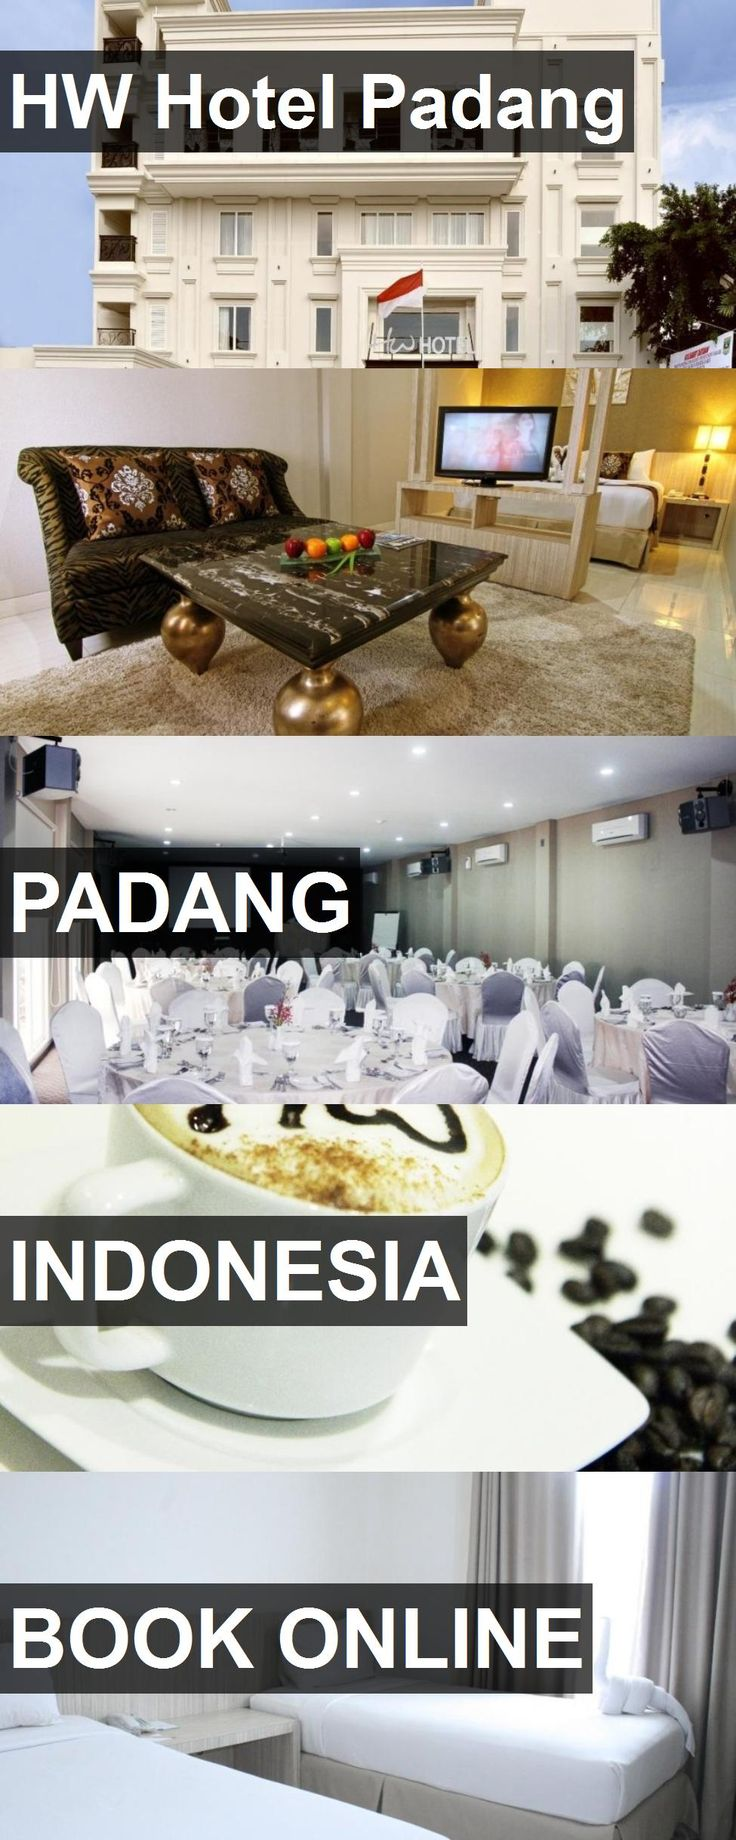 HW Hotel Padang in Padang, Indonesia. For more information, photos, reviews and best prices please follow the link. #Indonesia #Padang #travel #vacation #hotel